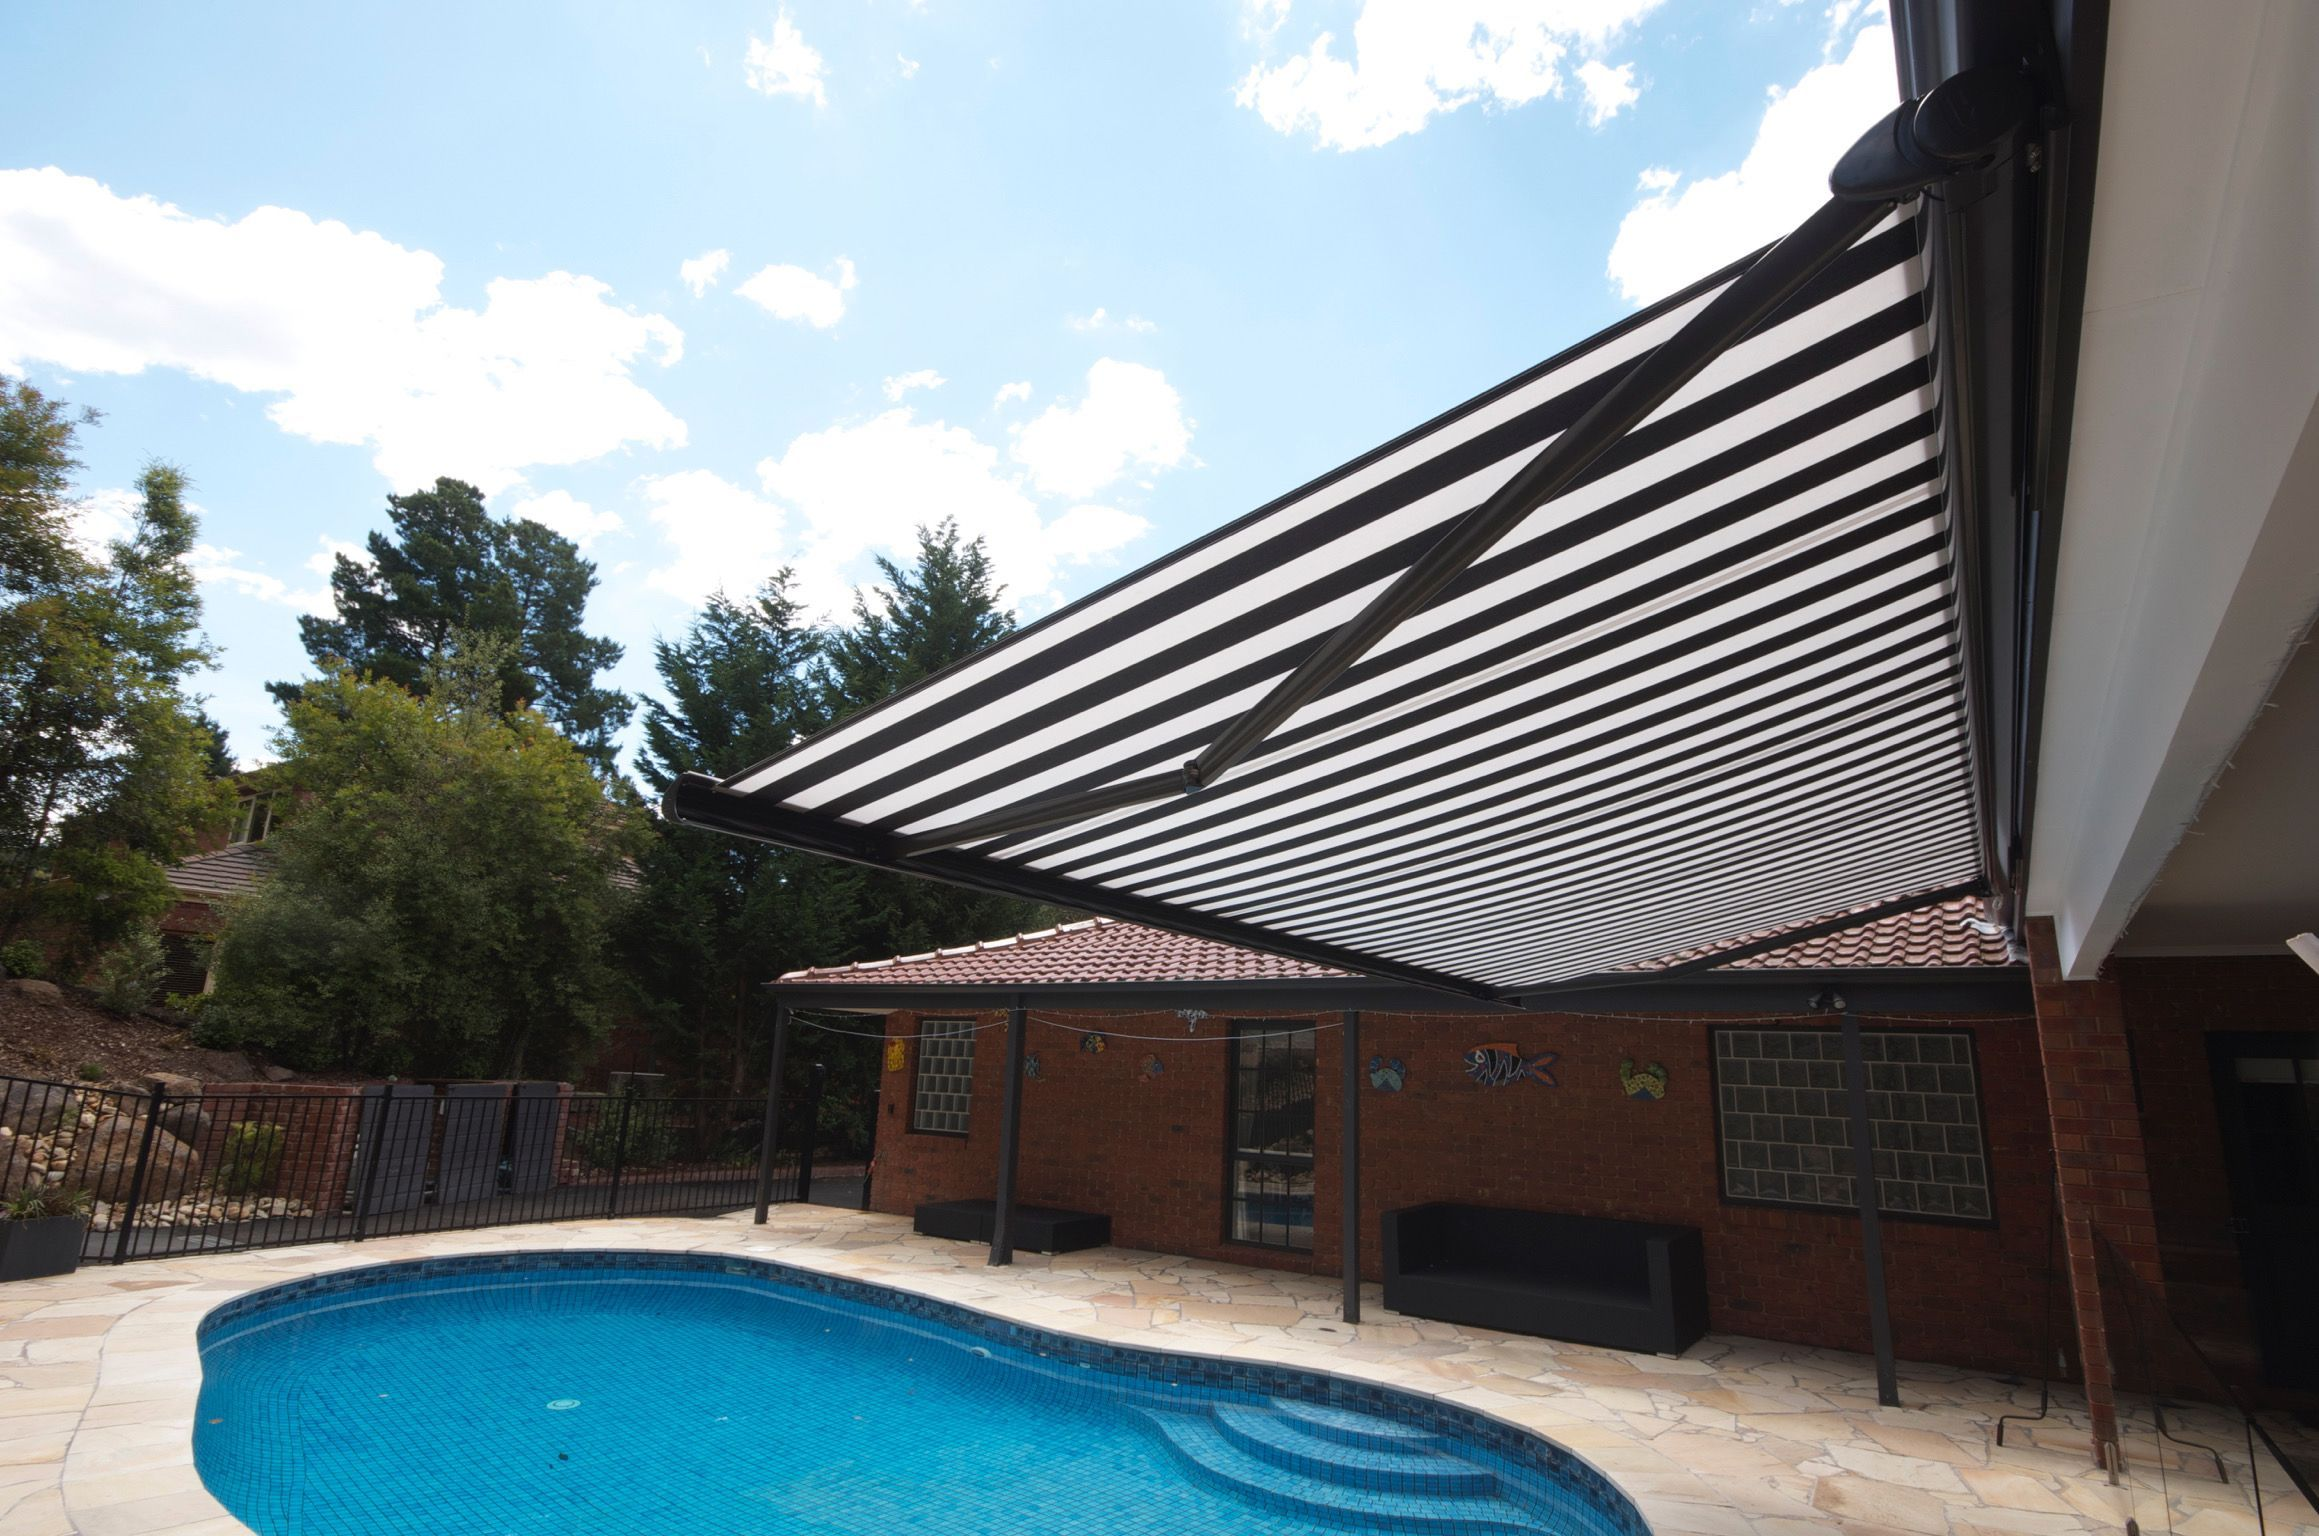 Folding Arm Awnings In Melbourne Outdoor Awnings Outdoor Outdoor Blinds